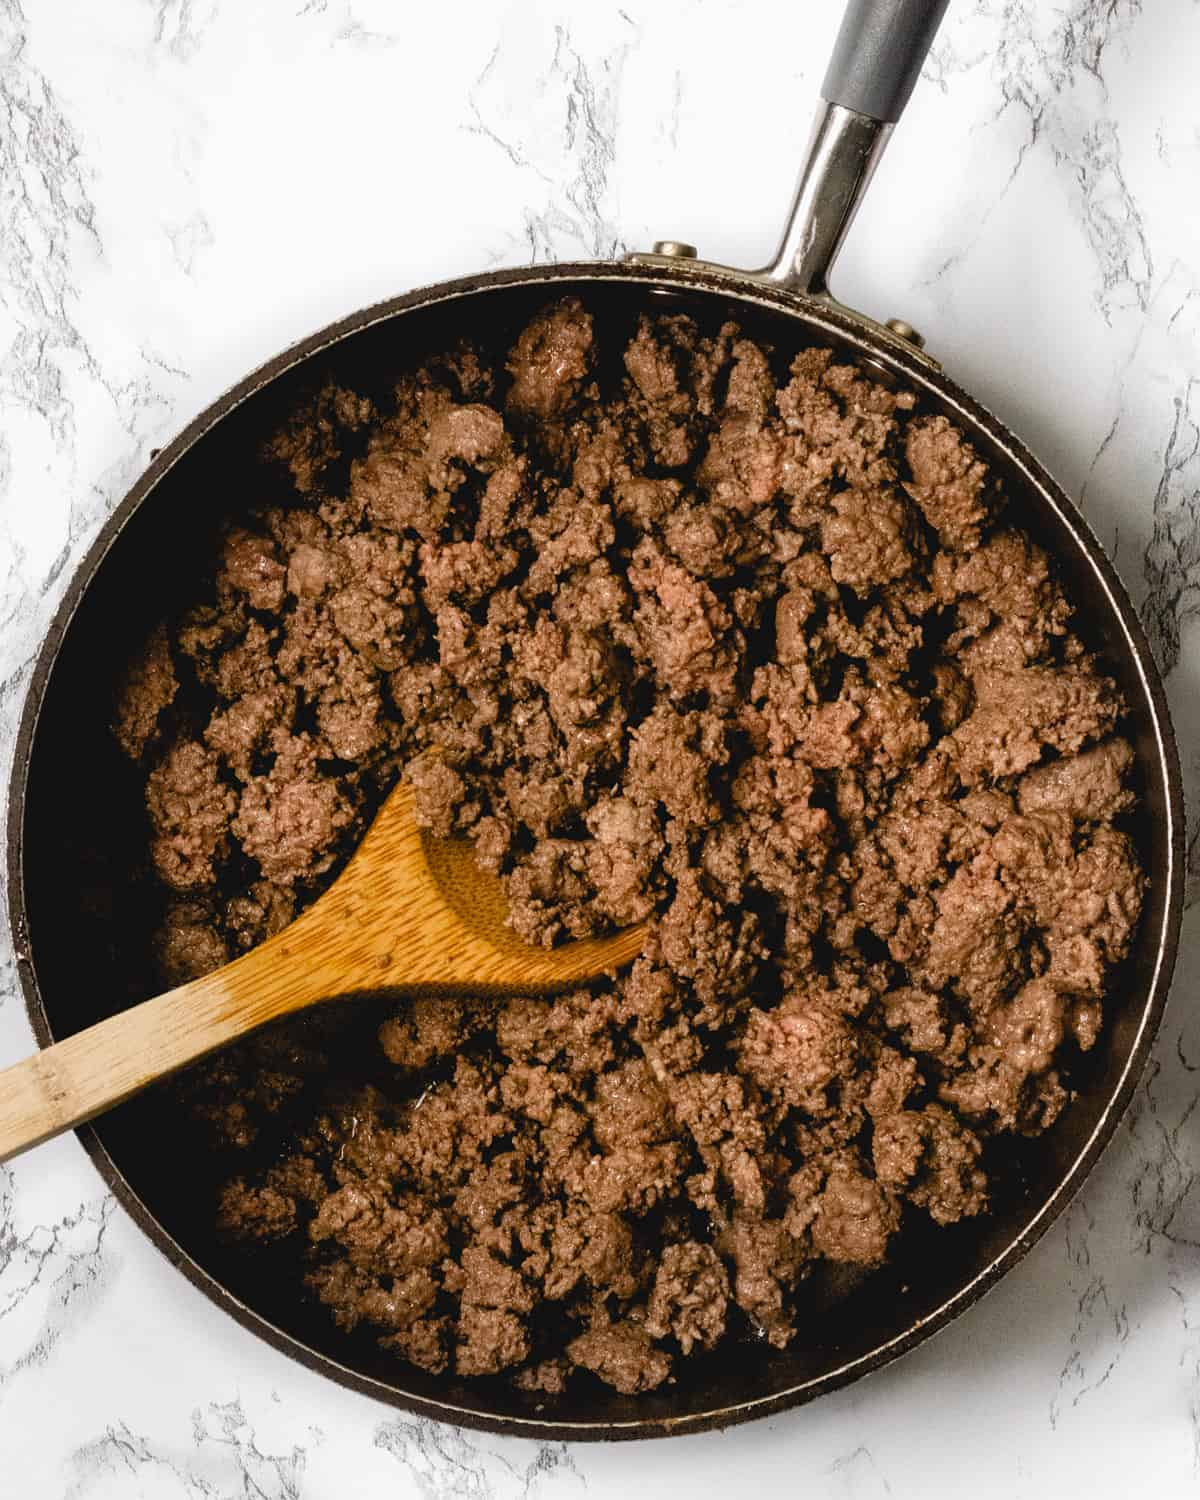 Pan of ground beef.